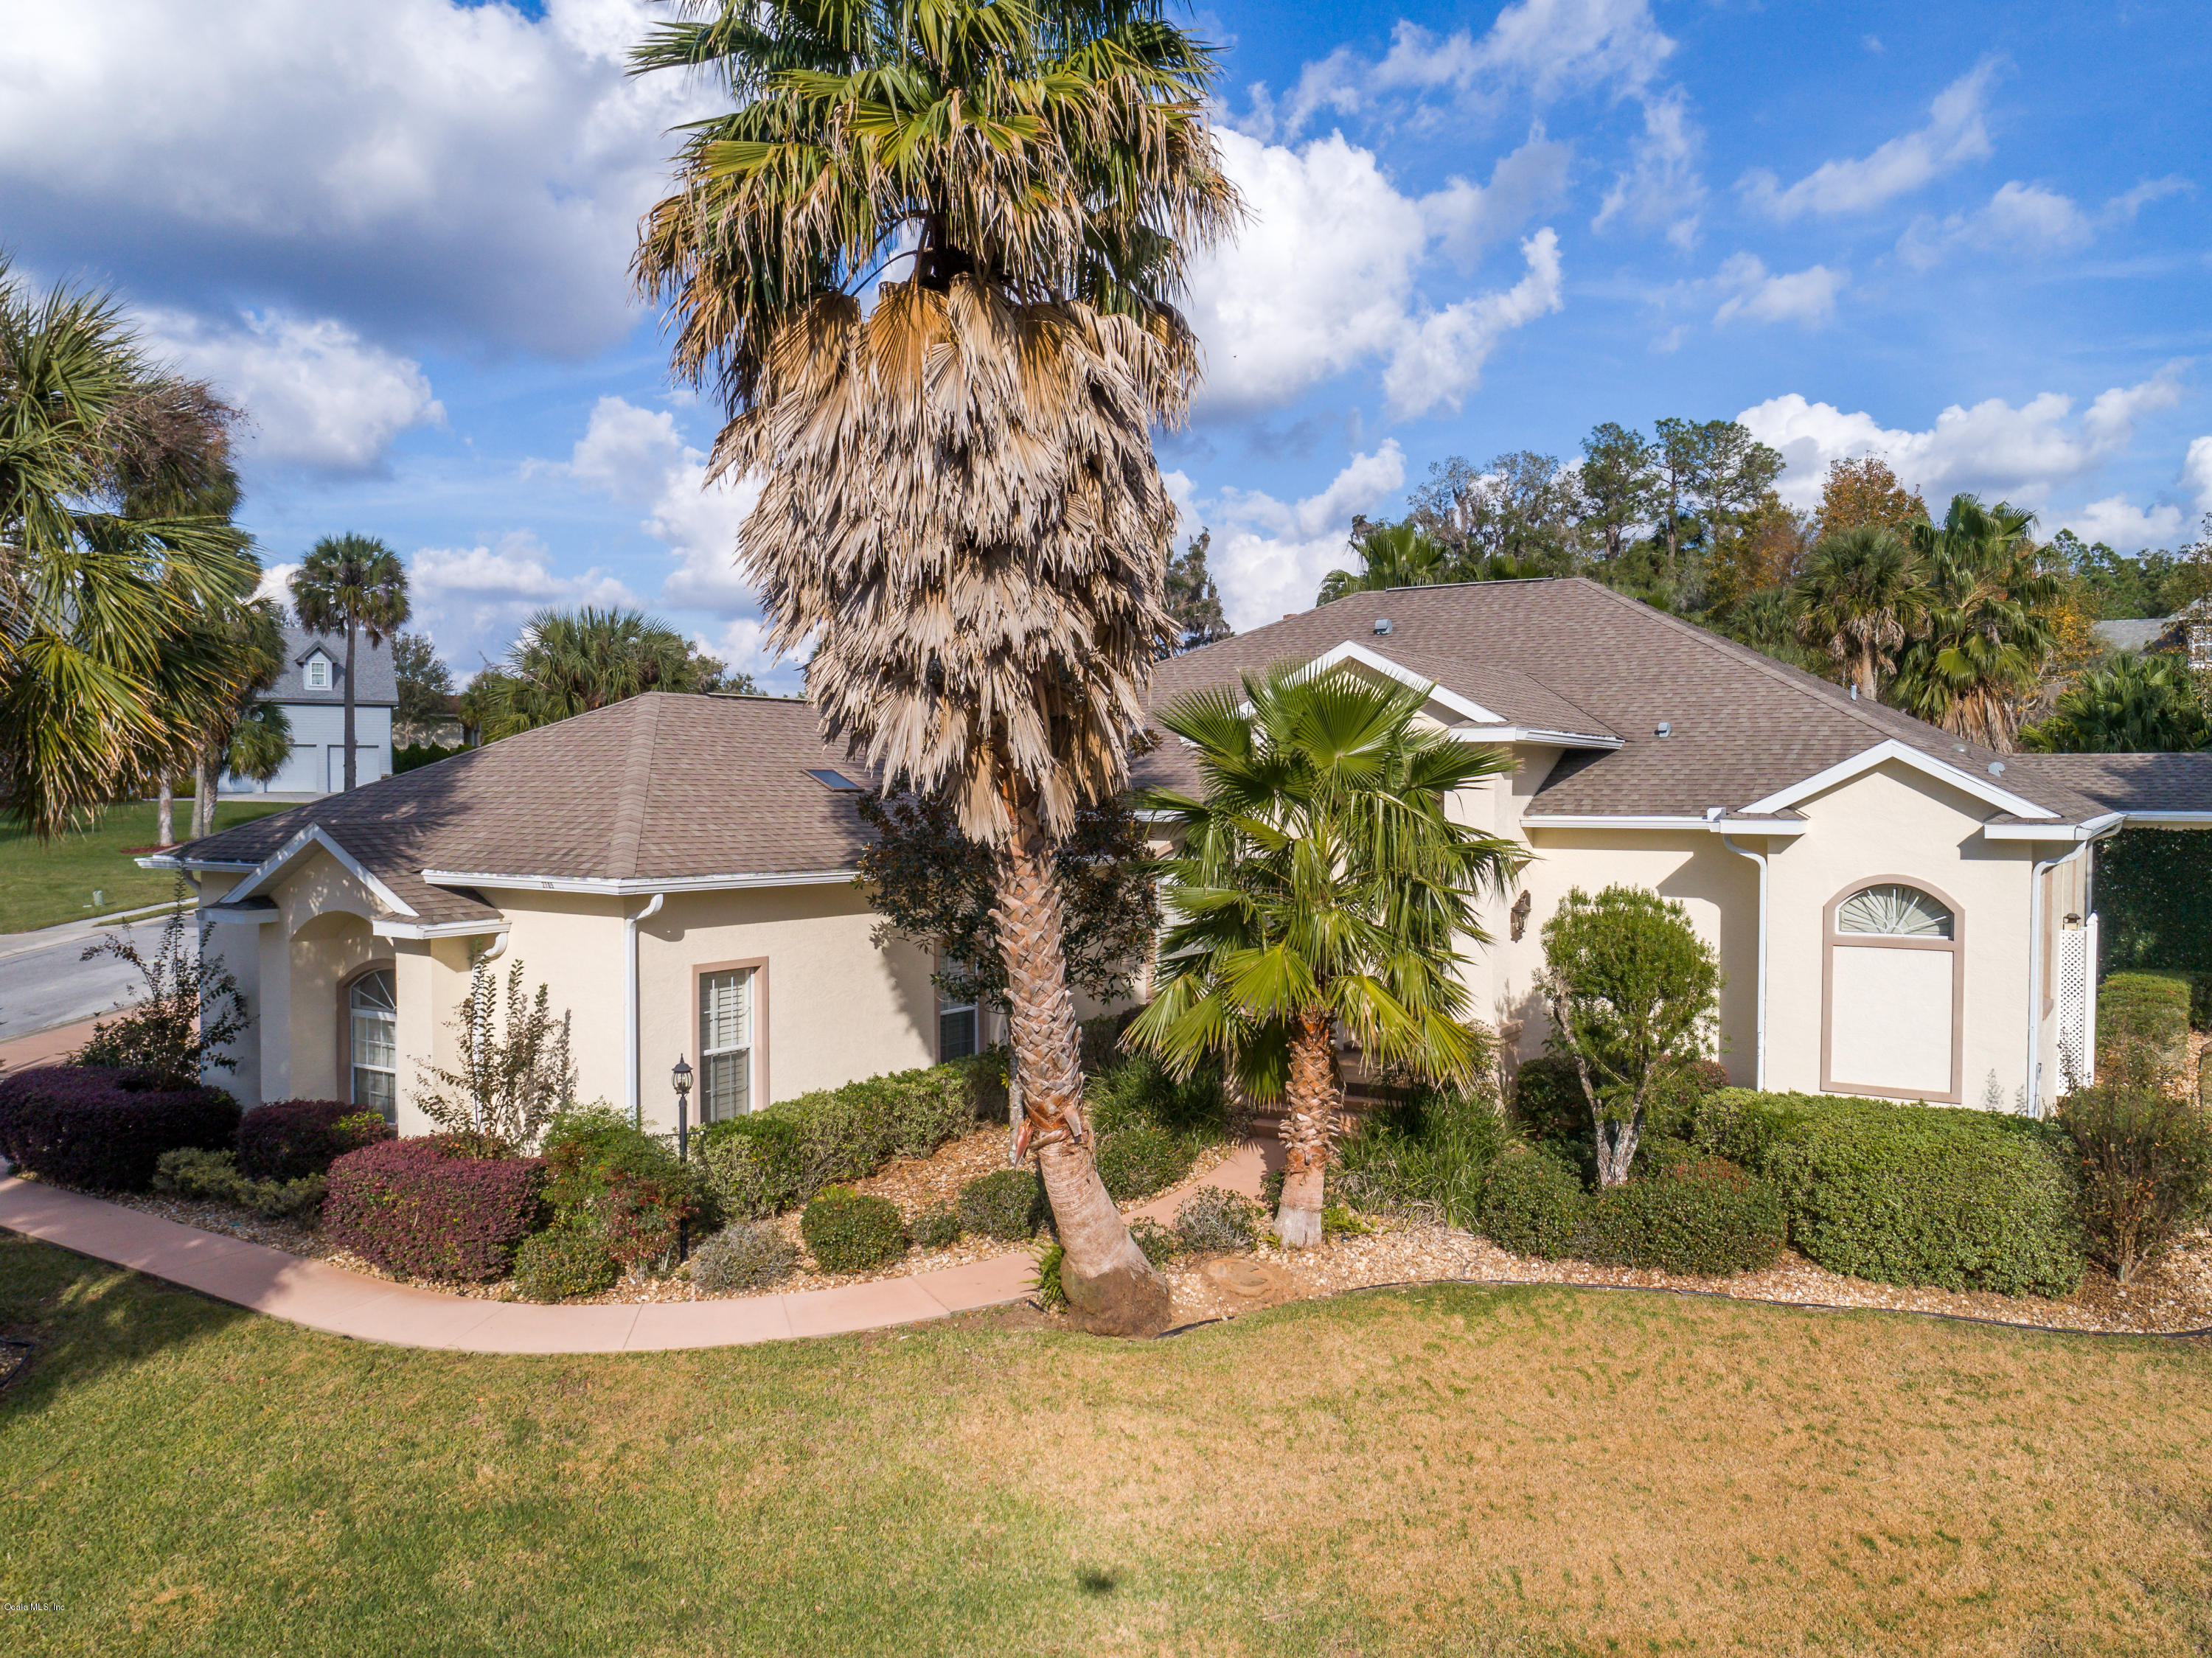 2705 SW 18TH AVENUE, OCALA, FL 34471